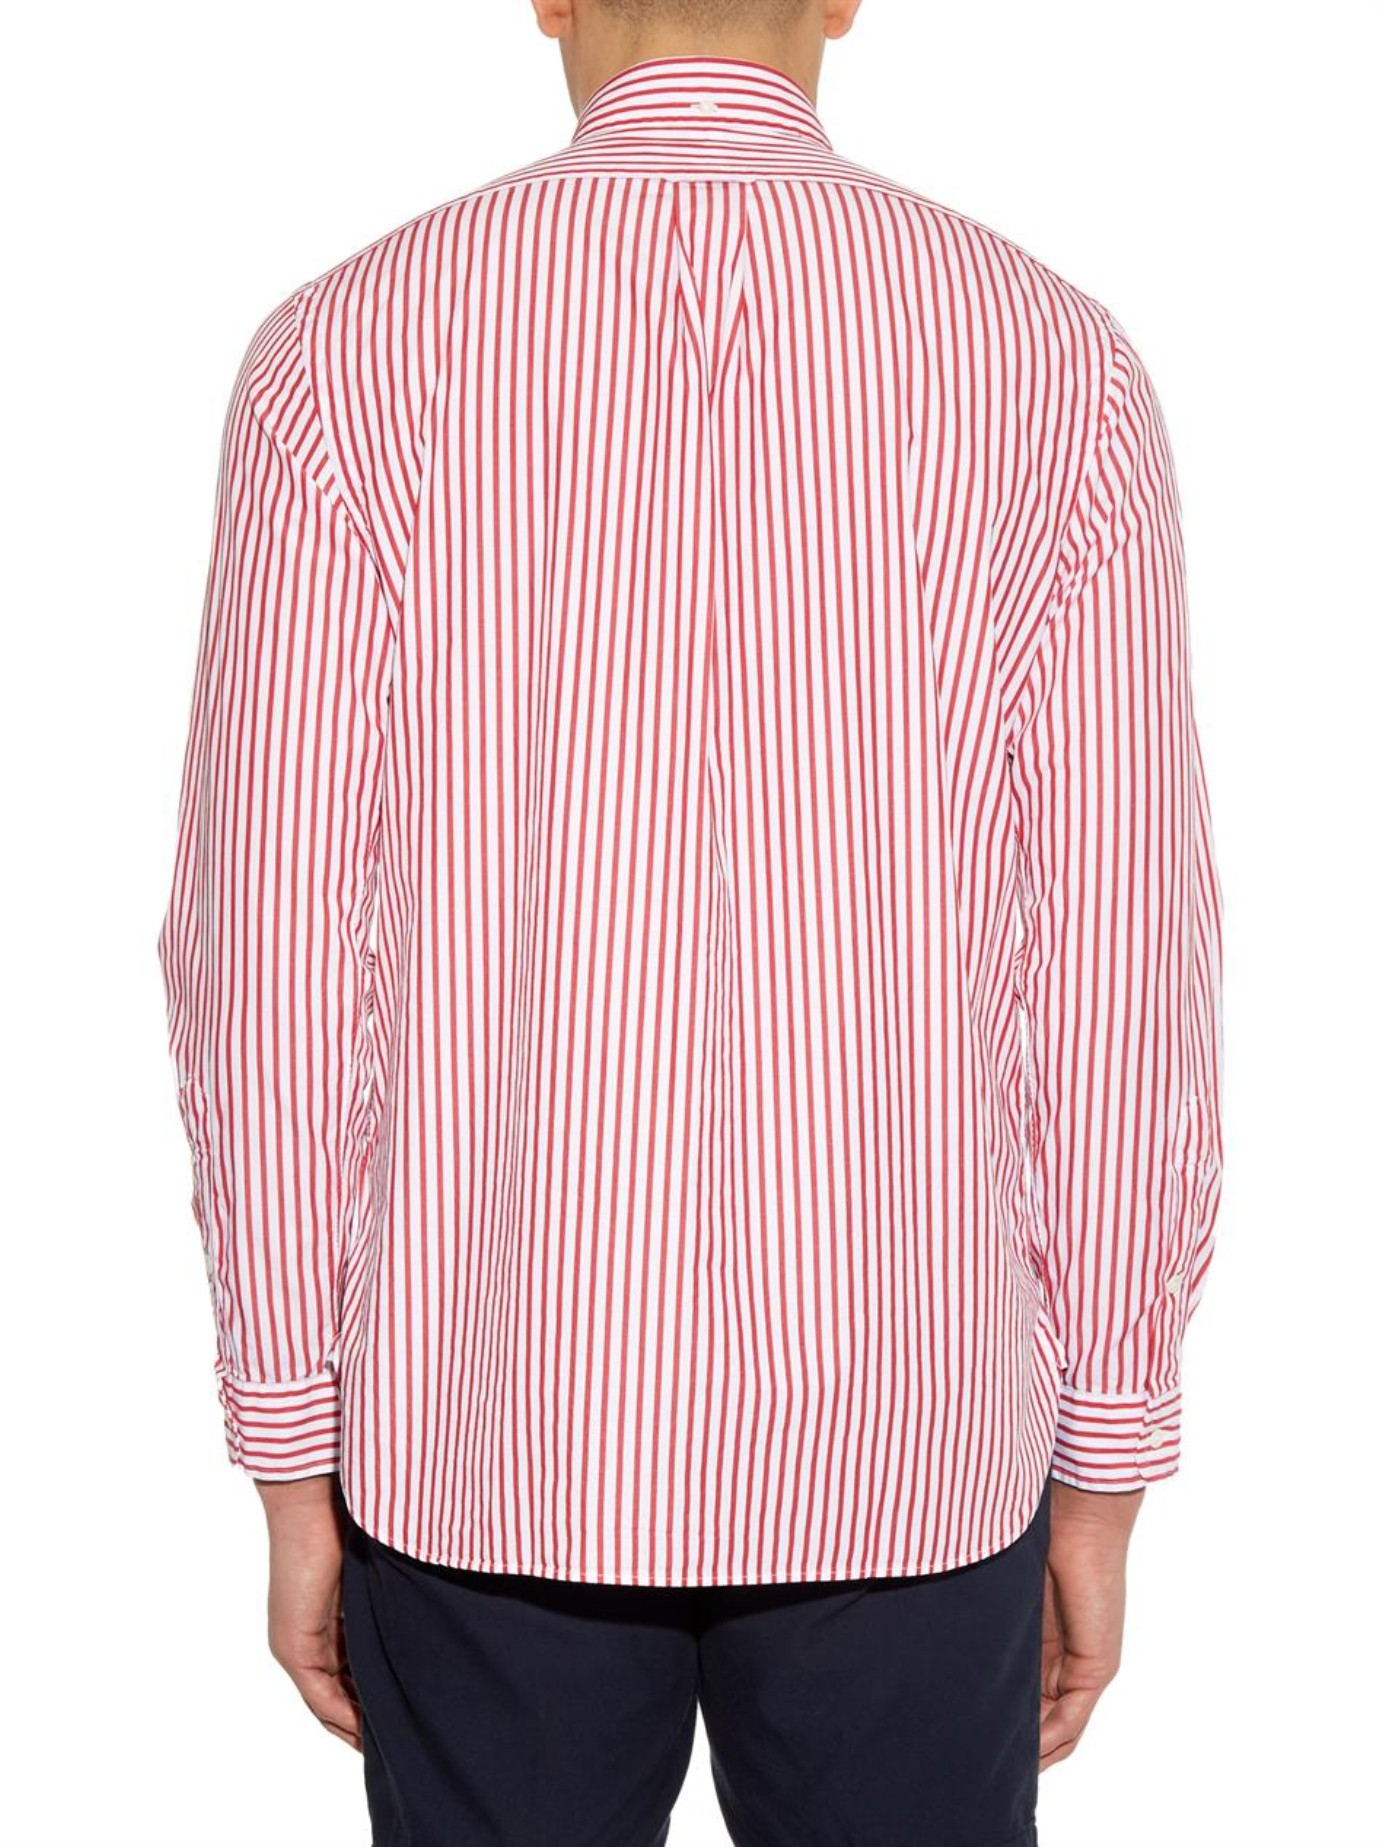 8227d6007 ... neck tee. m5acd5cfa00450f8e3c532a45 7b48b 23953  where can i buy lyst polo  ralph lauren custom fit striped cotton shirt in red for